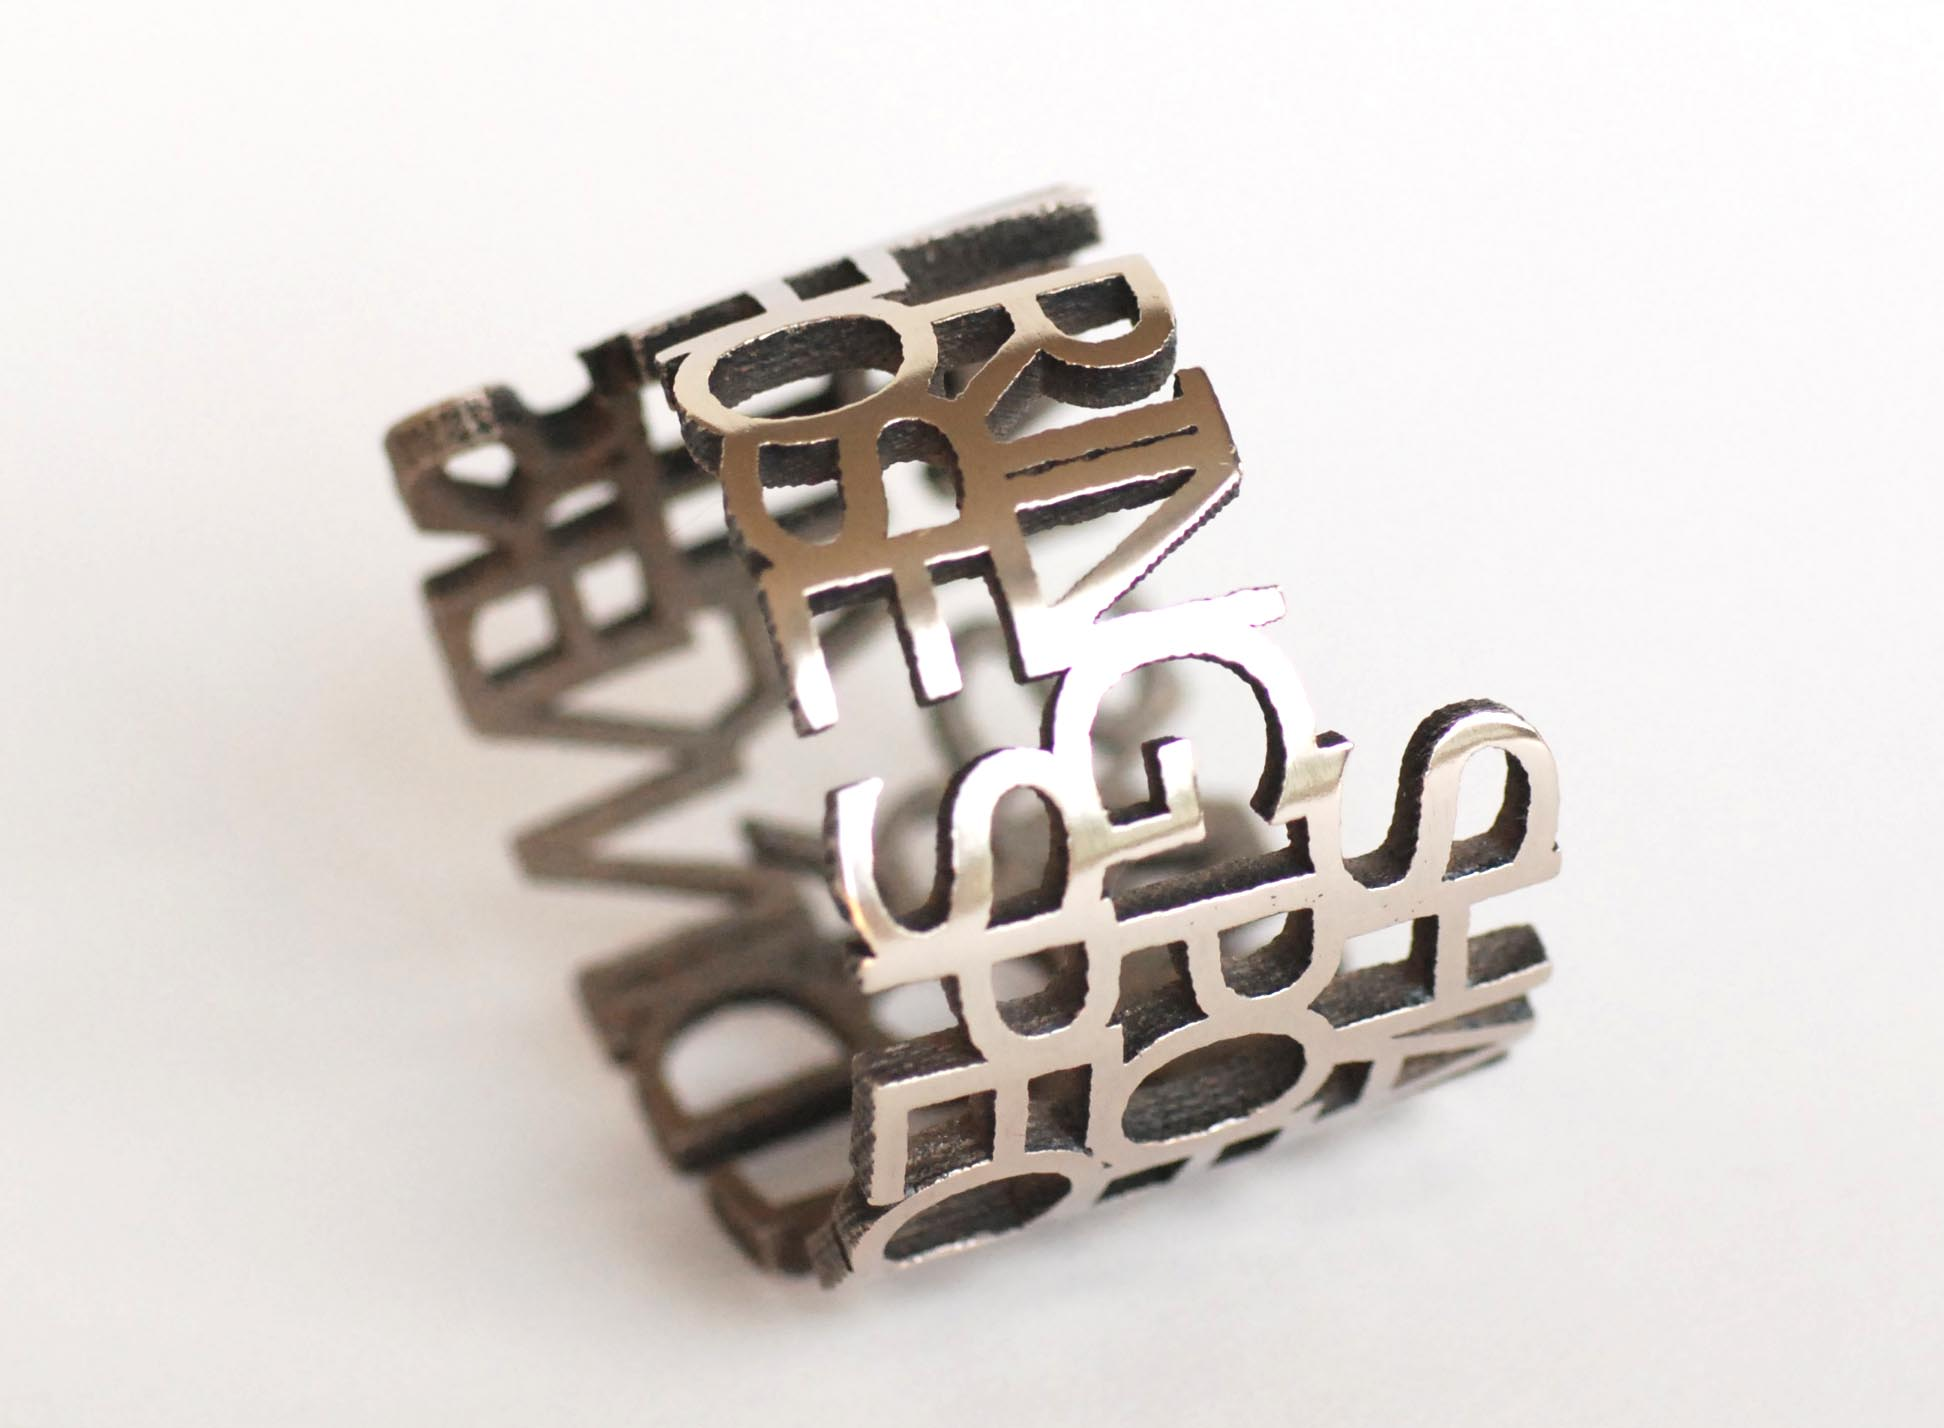 Stainless Steel 3d printed material